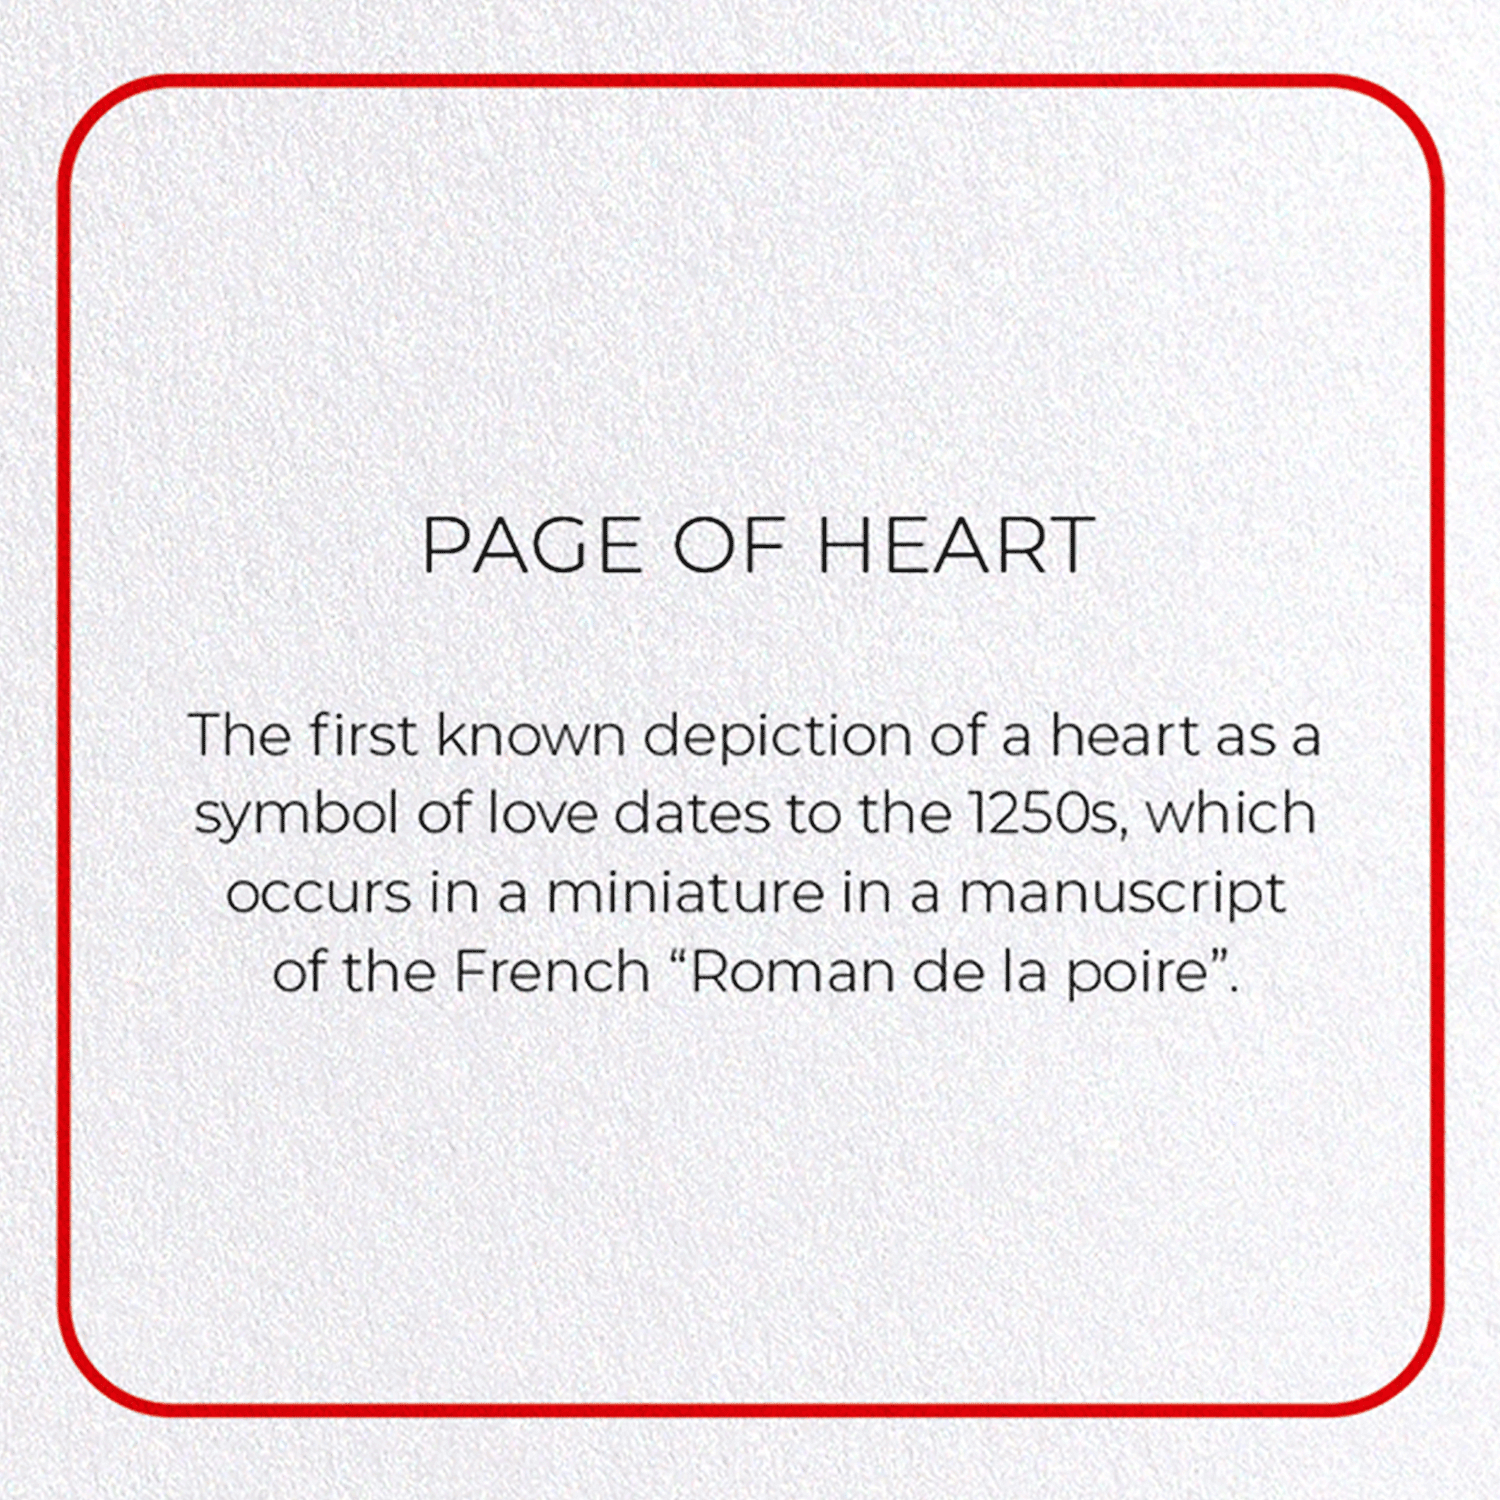 PAGE OF HEART